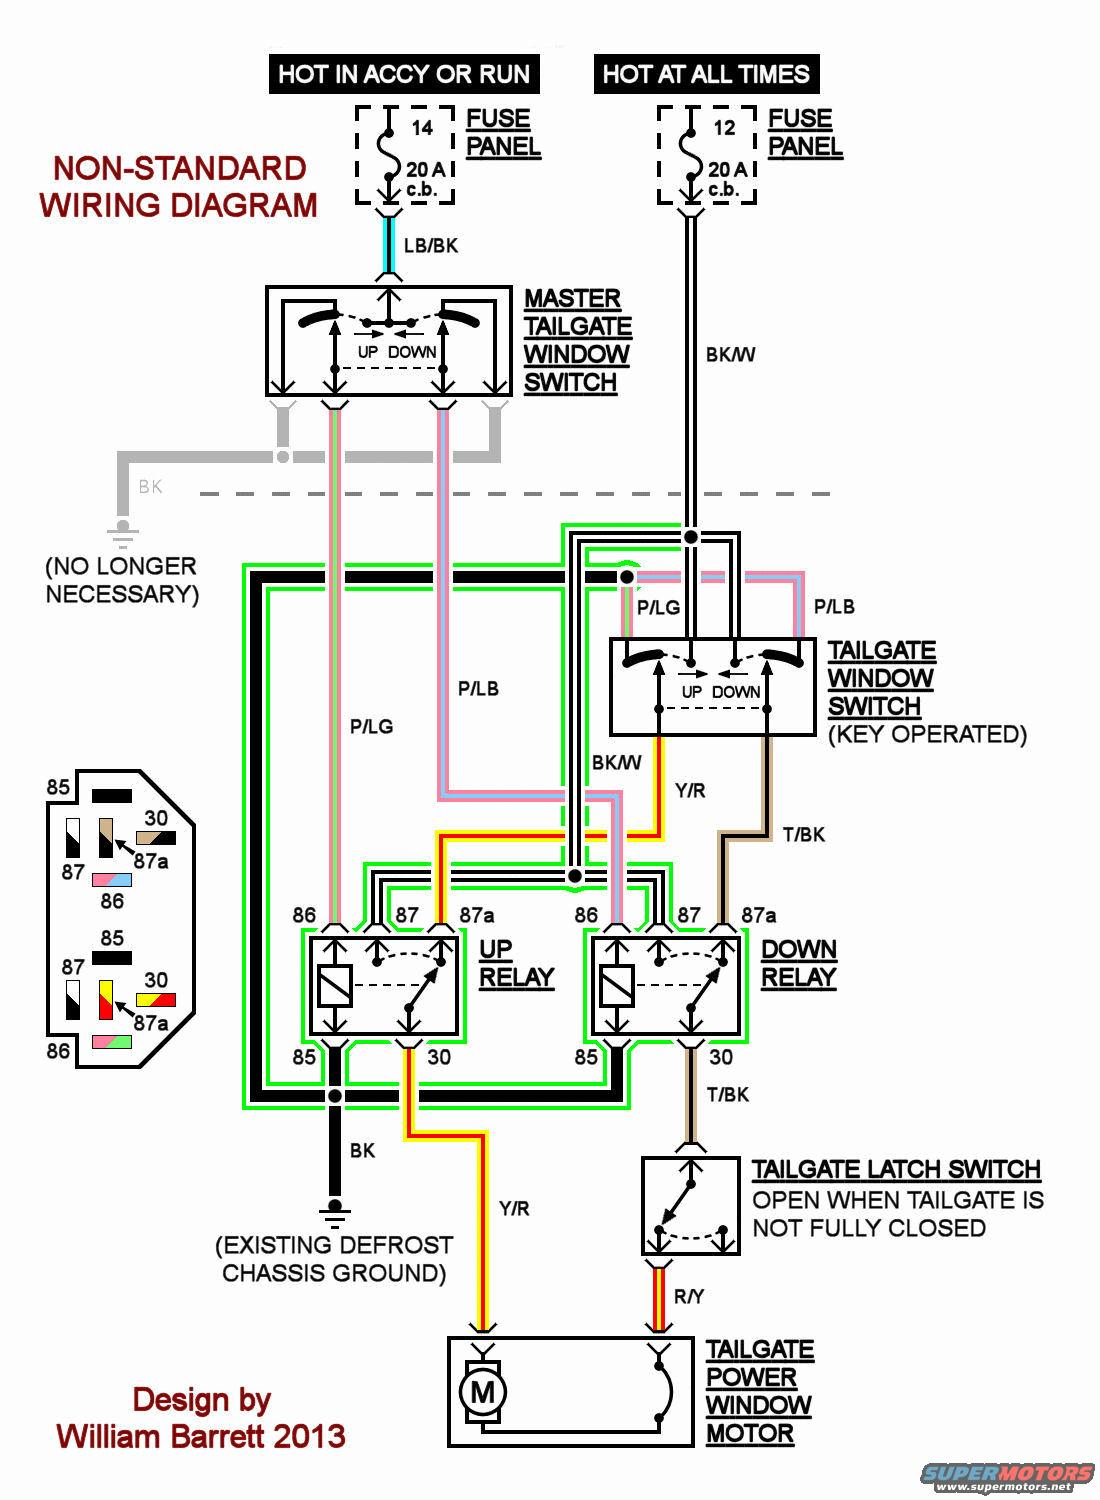 1991 Ford Bronco Rear Window Wiring Diagram 1982 Tailgate Rewire Works 100x Better Page 2 Forum Rh Fullsizebronco Com For Engine Diagrams 1984